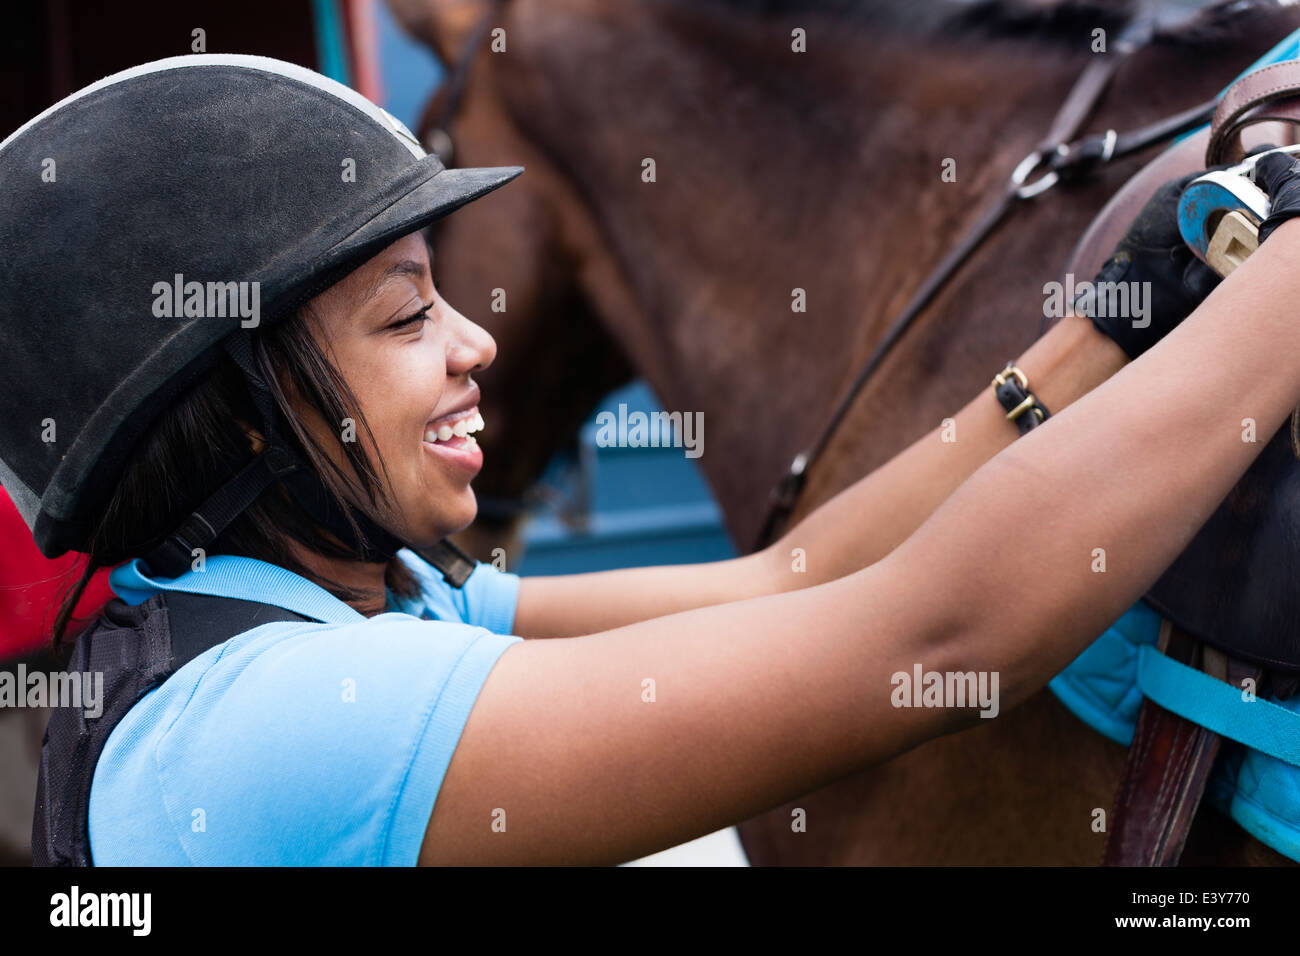 Close up of young woman putting saddle on horse Photo Stock